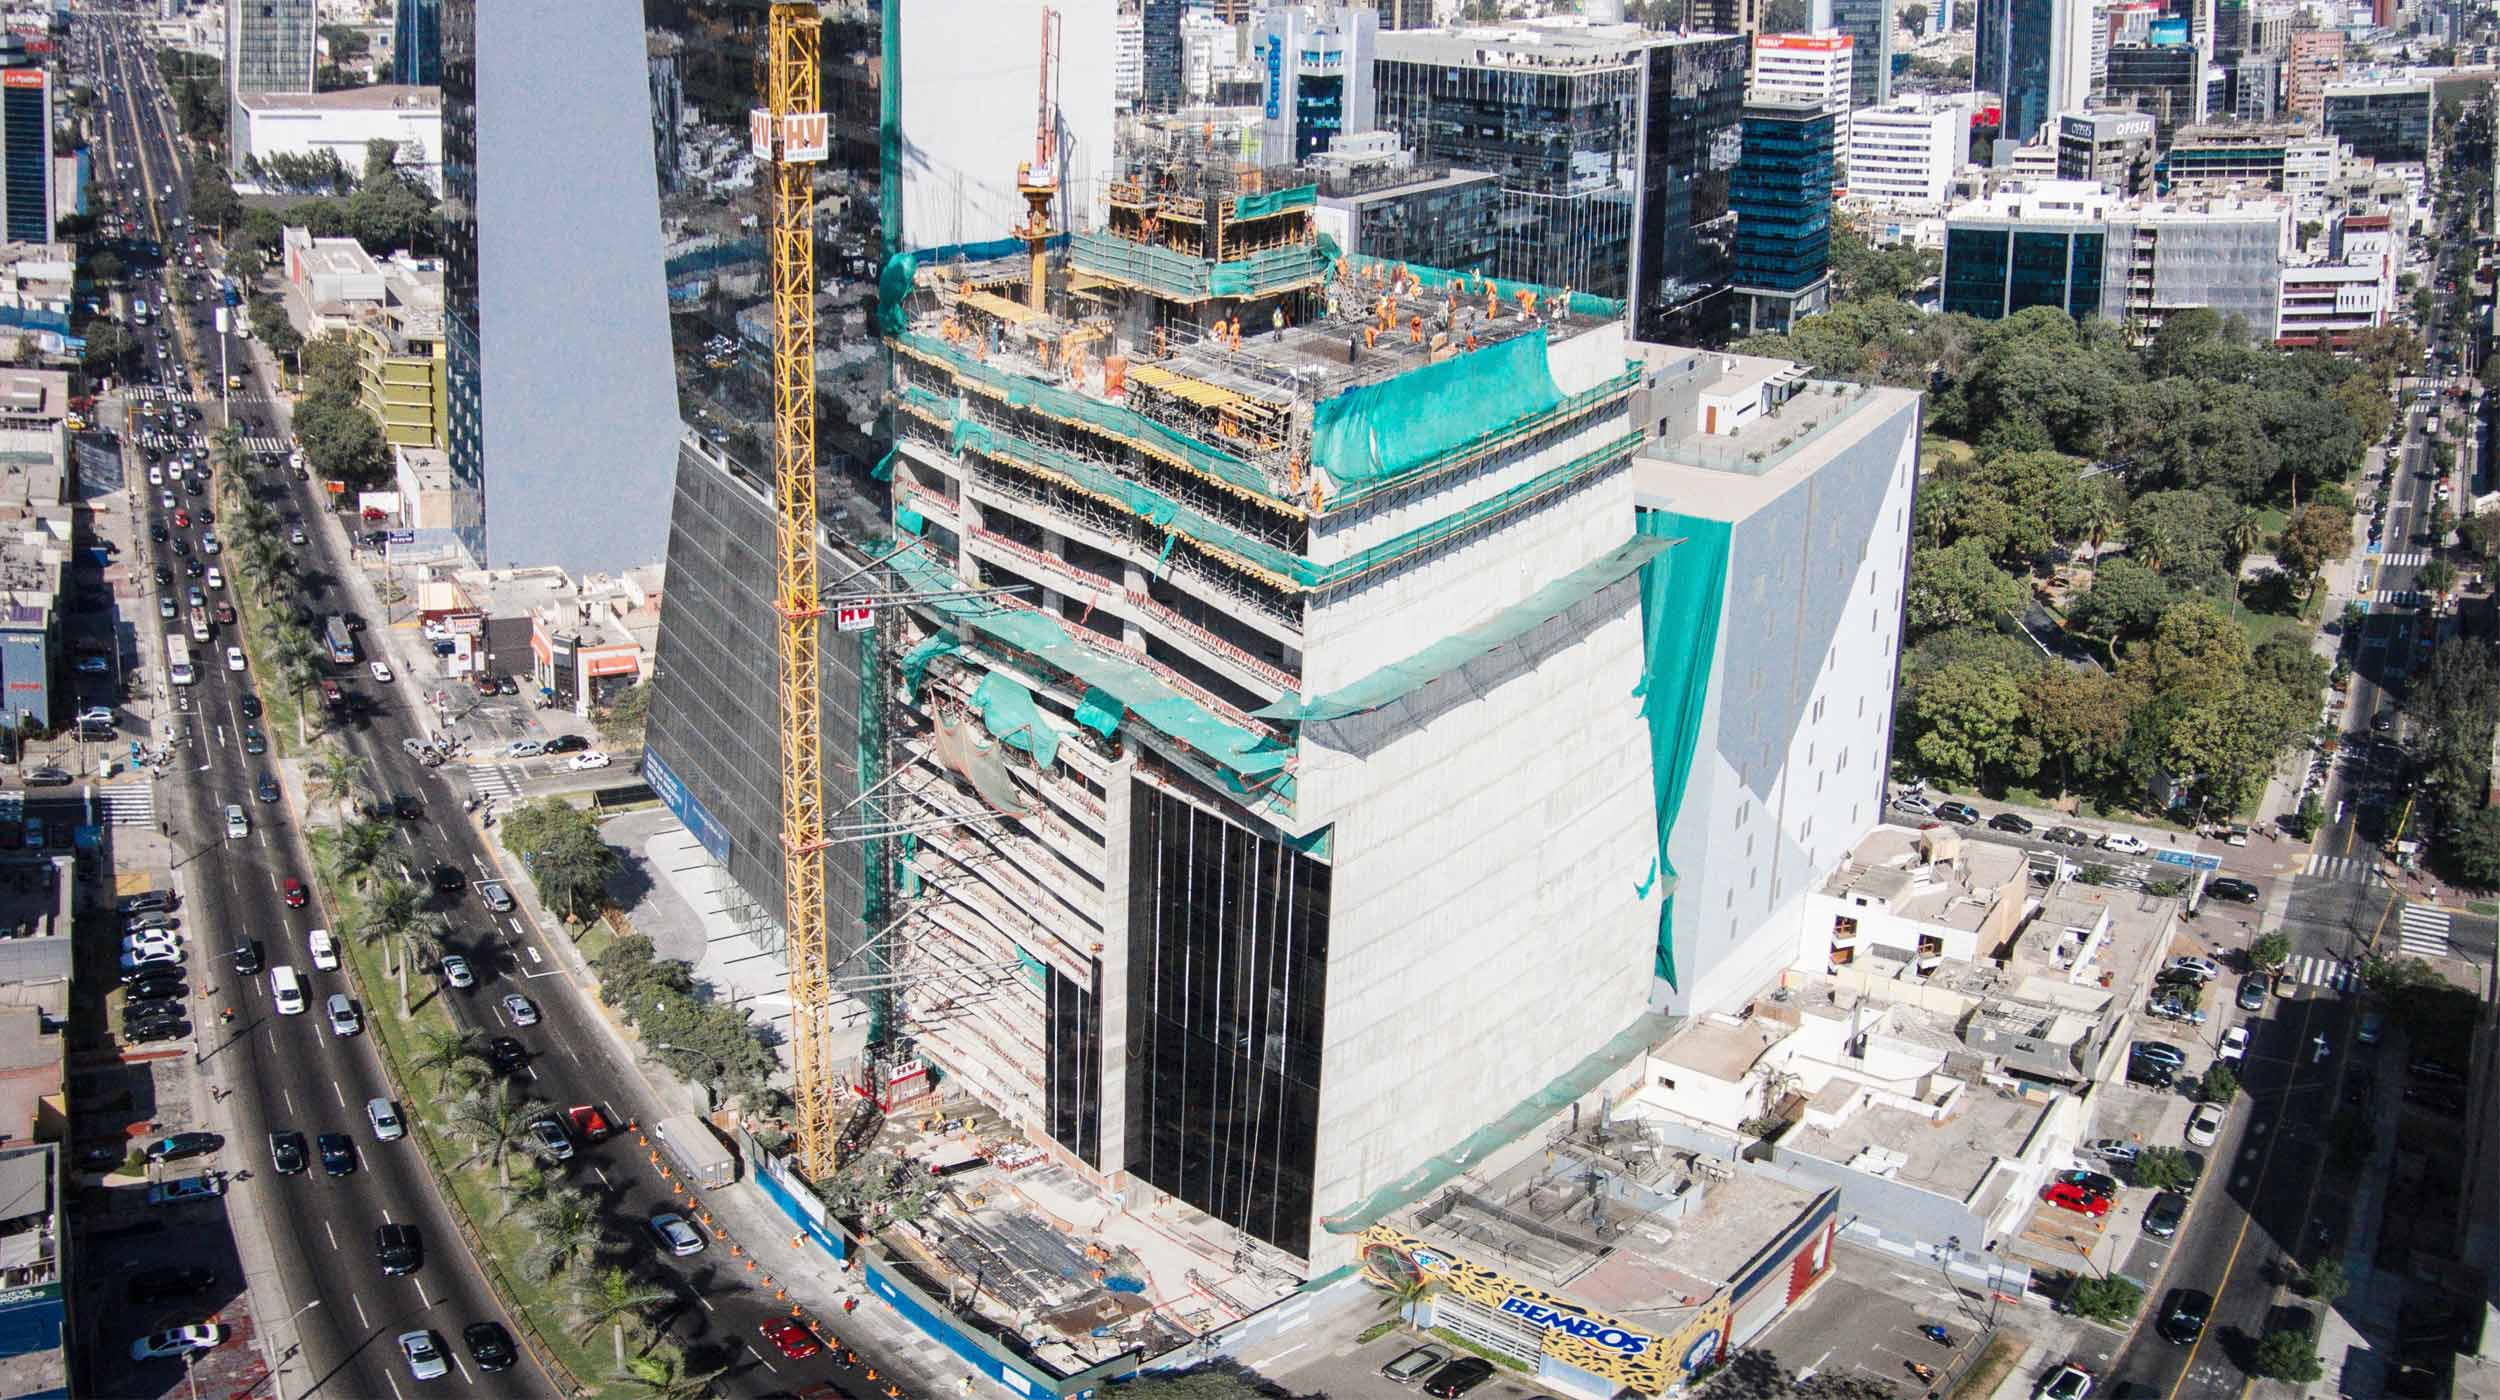 This commercial tower measures more than 90 m in height, making it one of the tallest buildings in Lima.